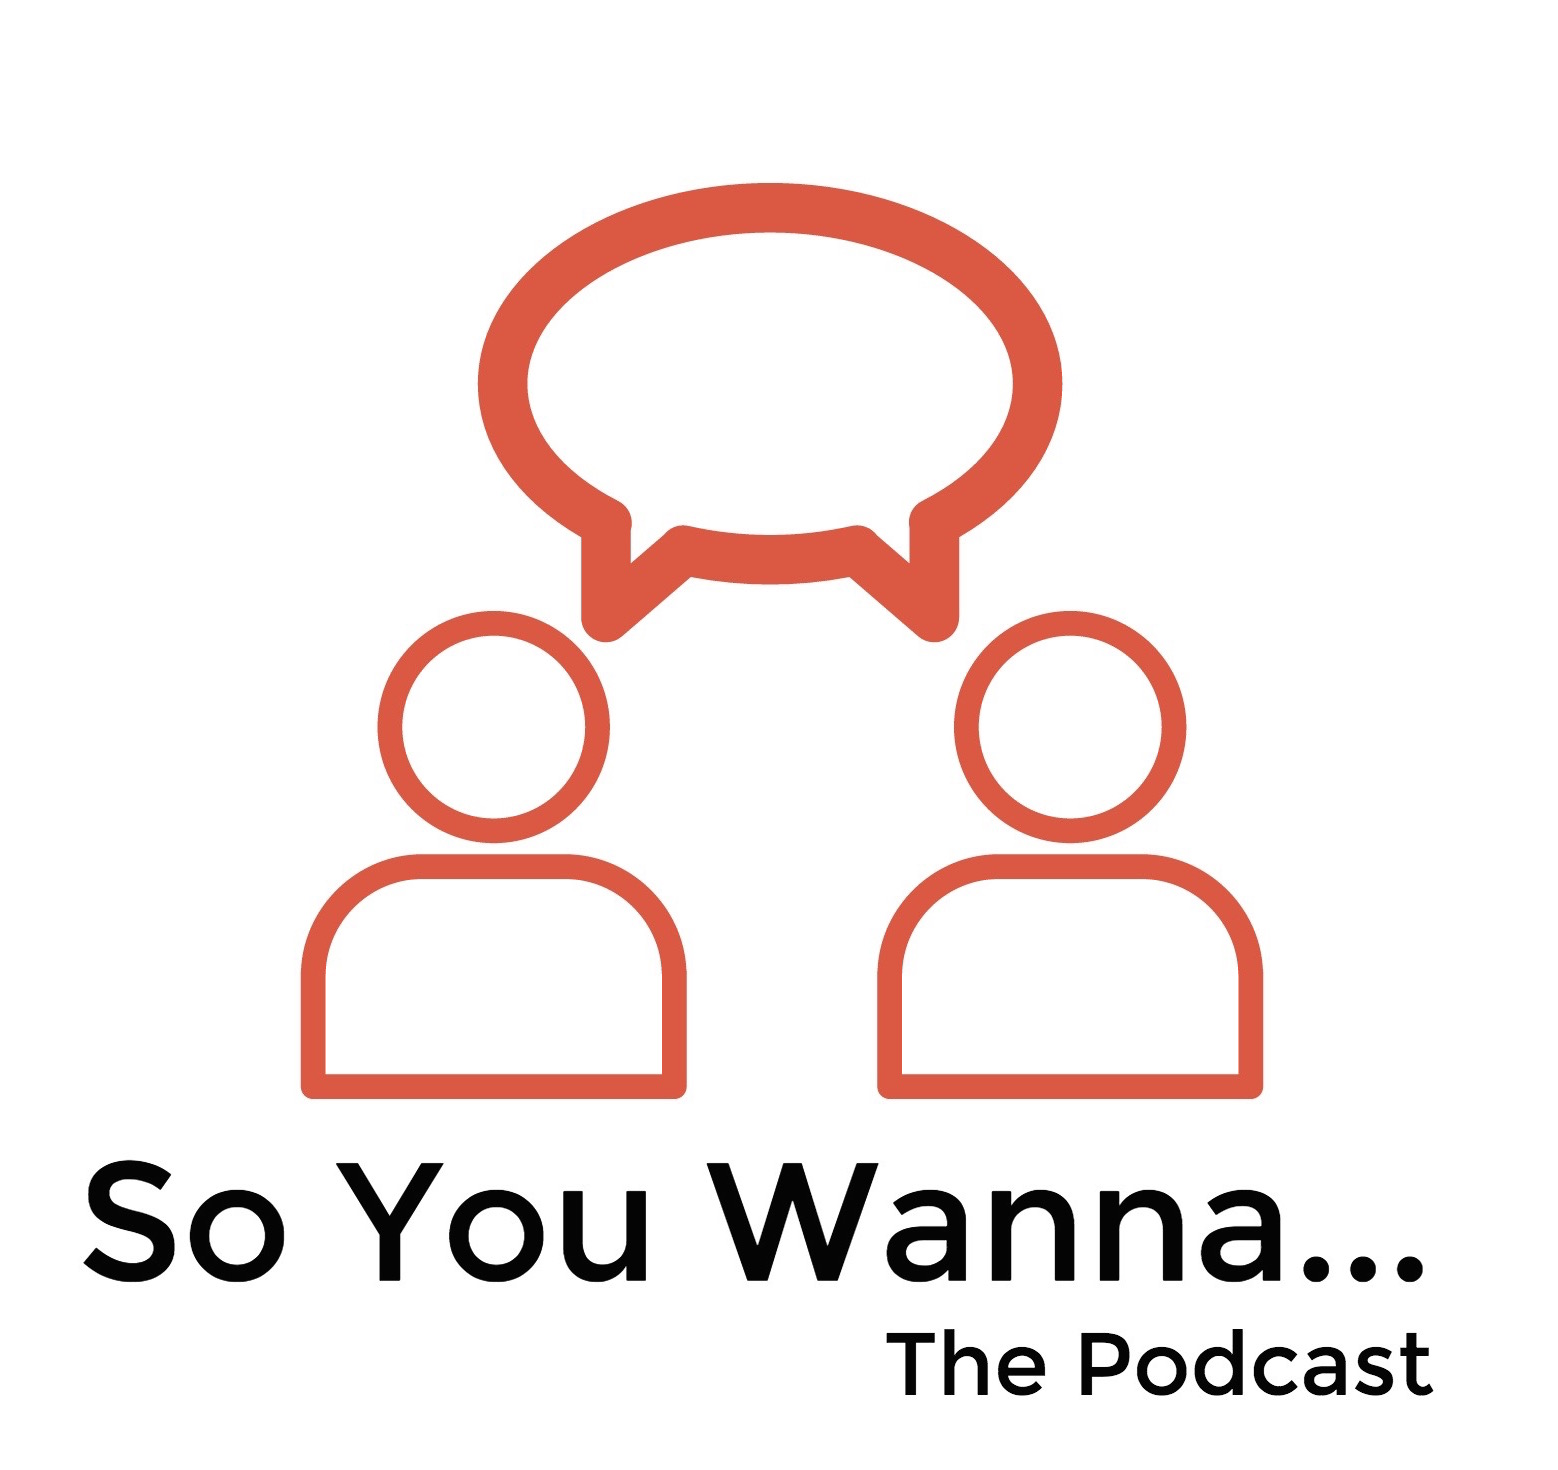 So You Wanna_The Podcast